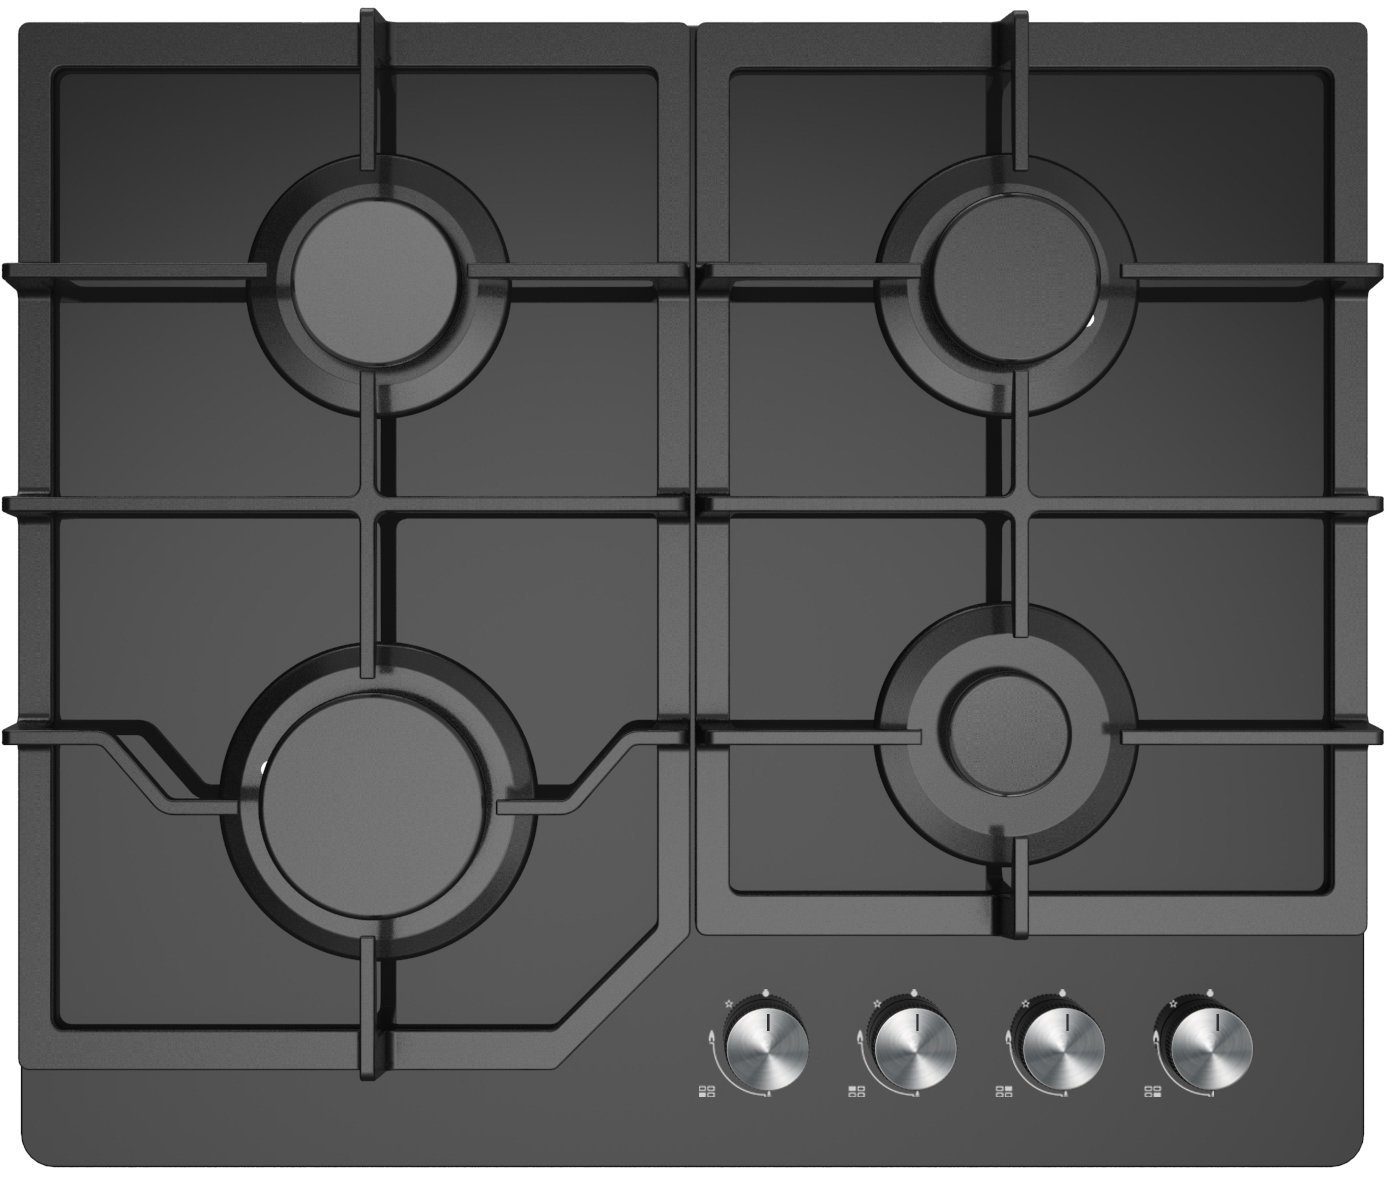 Gas Cooktop Glass Midea 60g40me084 Gfn 60cm Natural Gas Cooktop Appliances Online